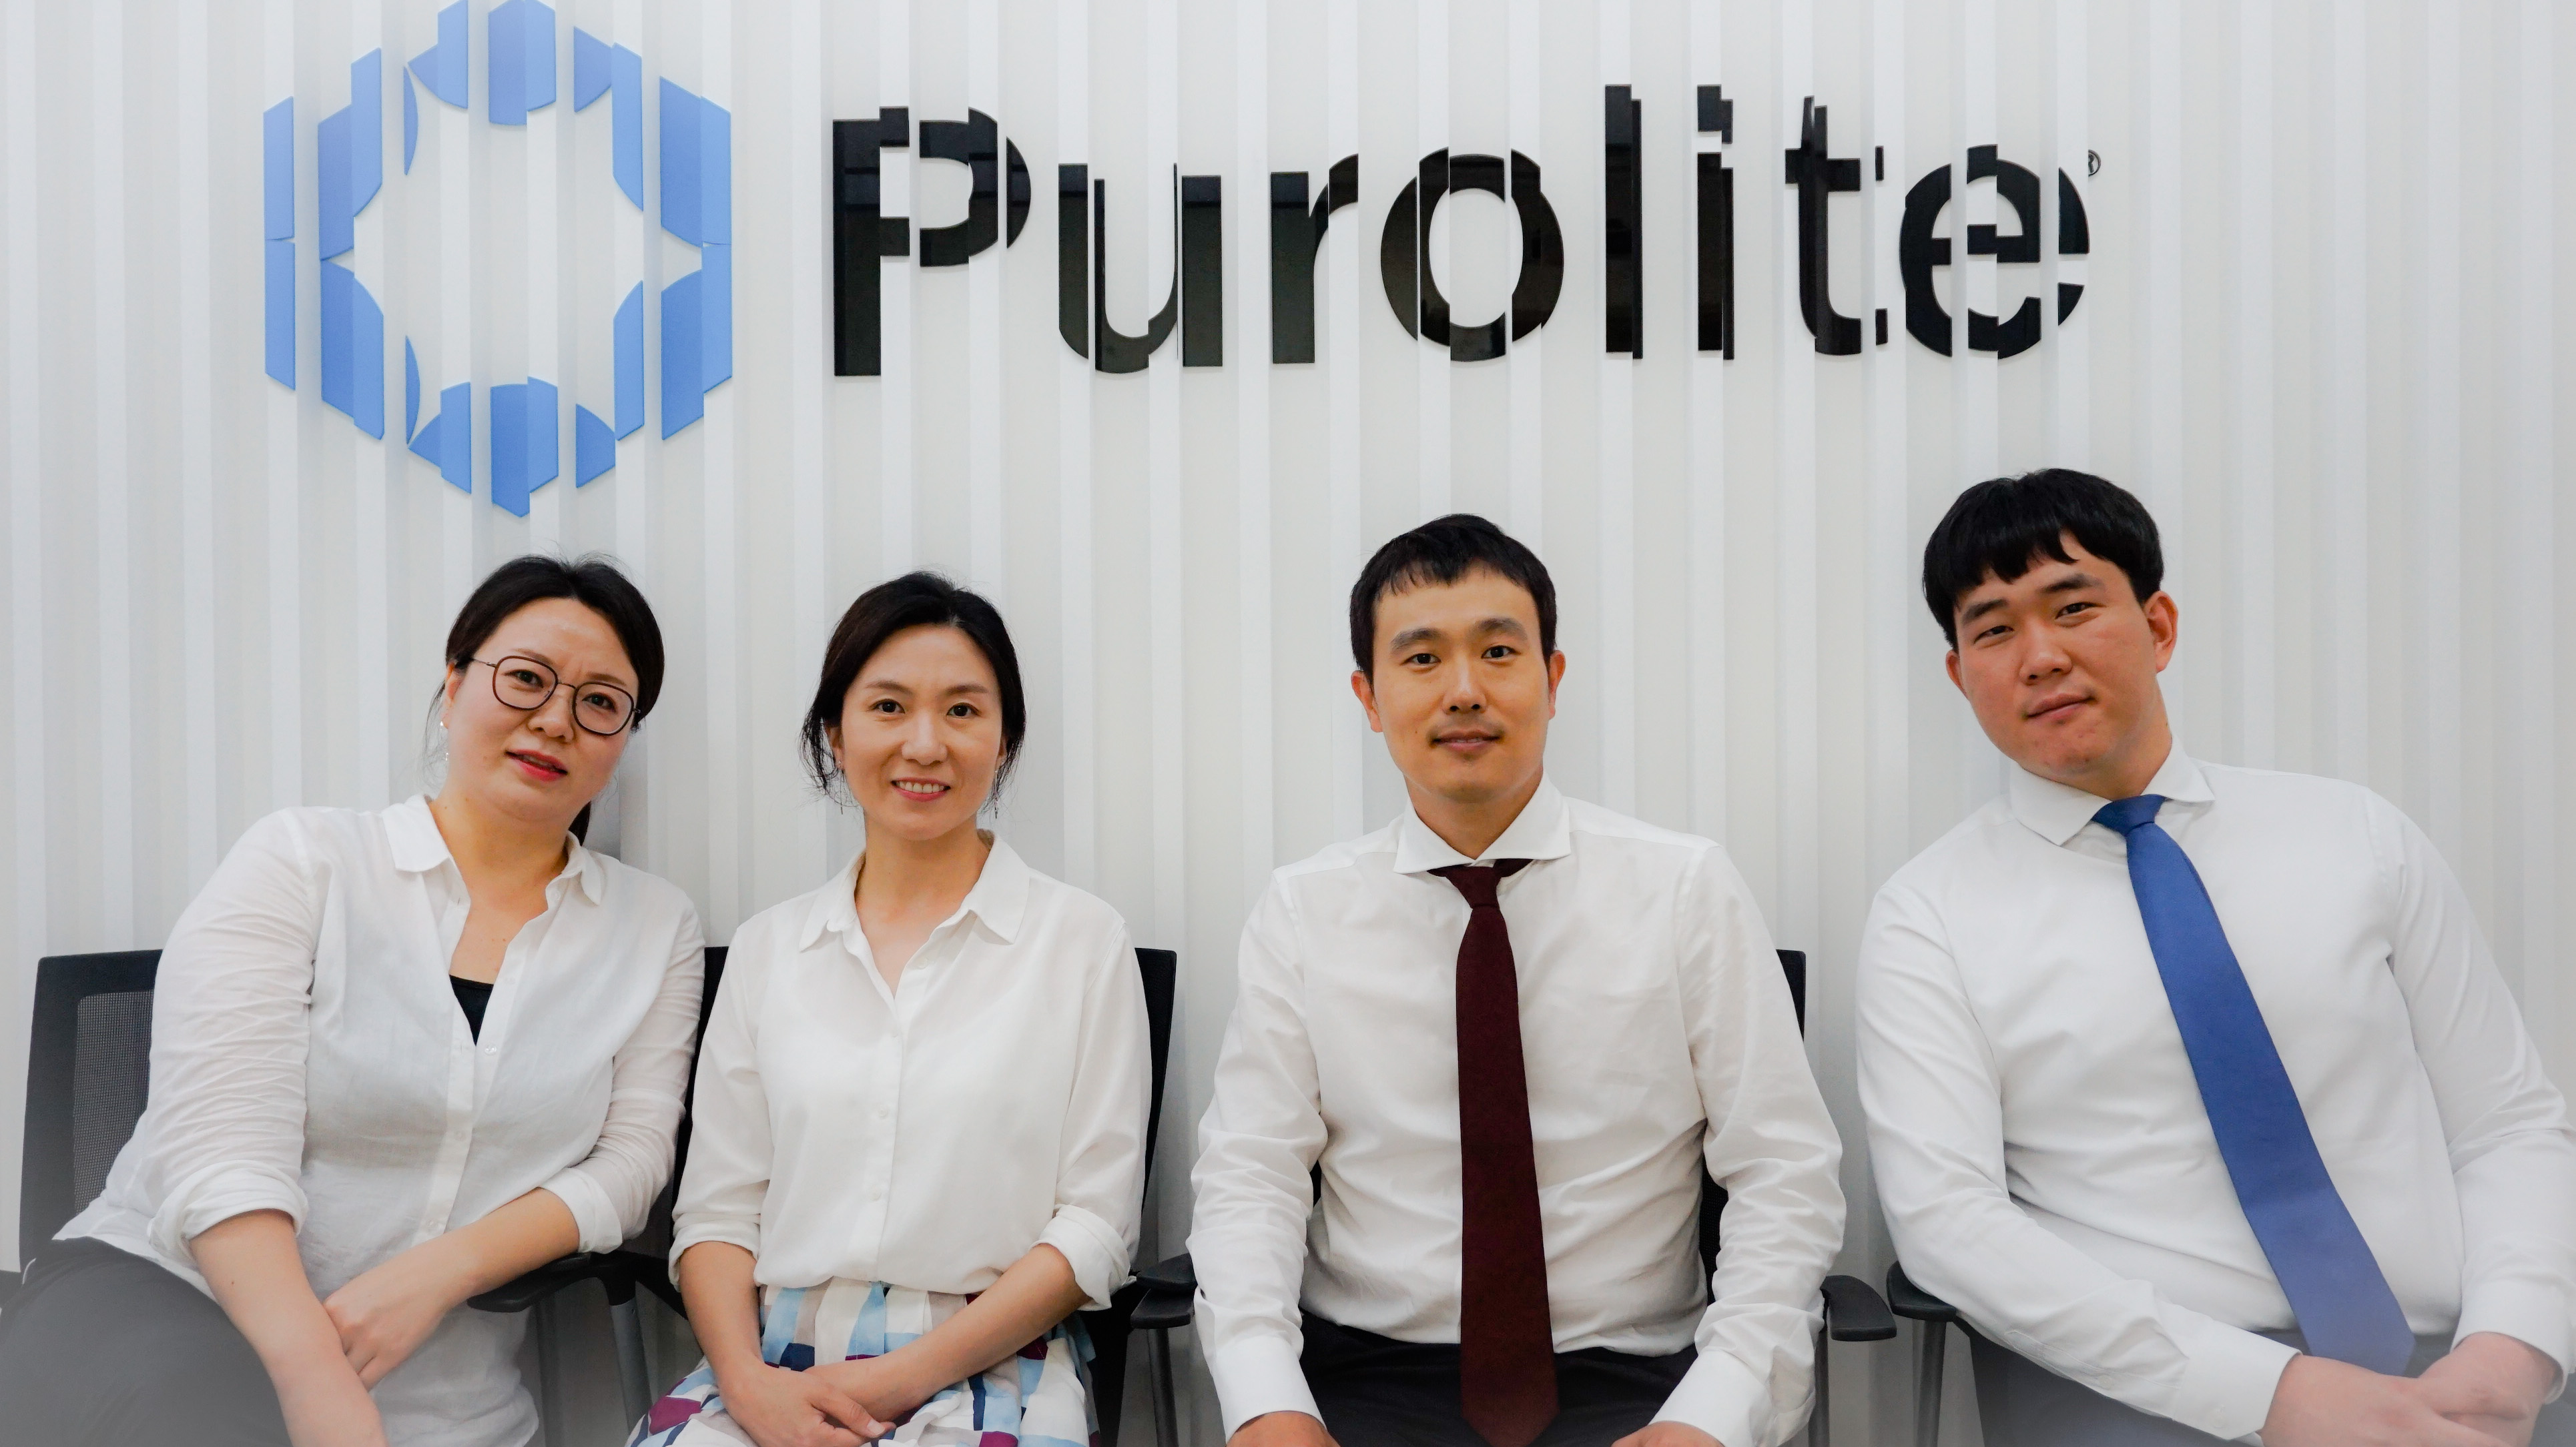 korea office group photo